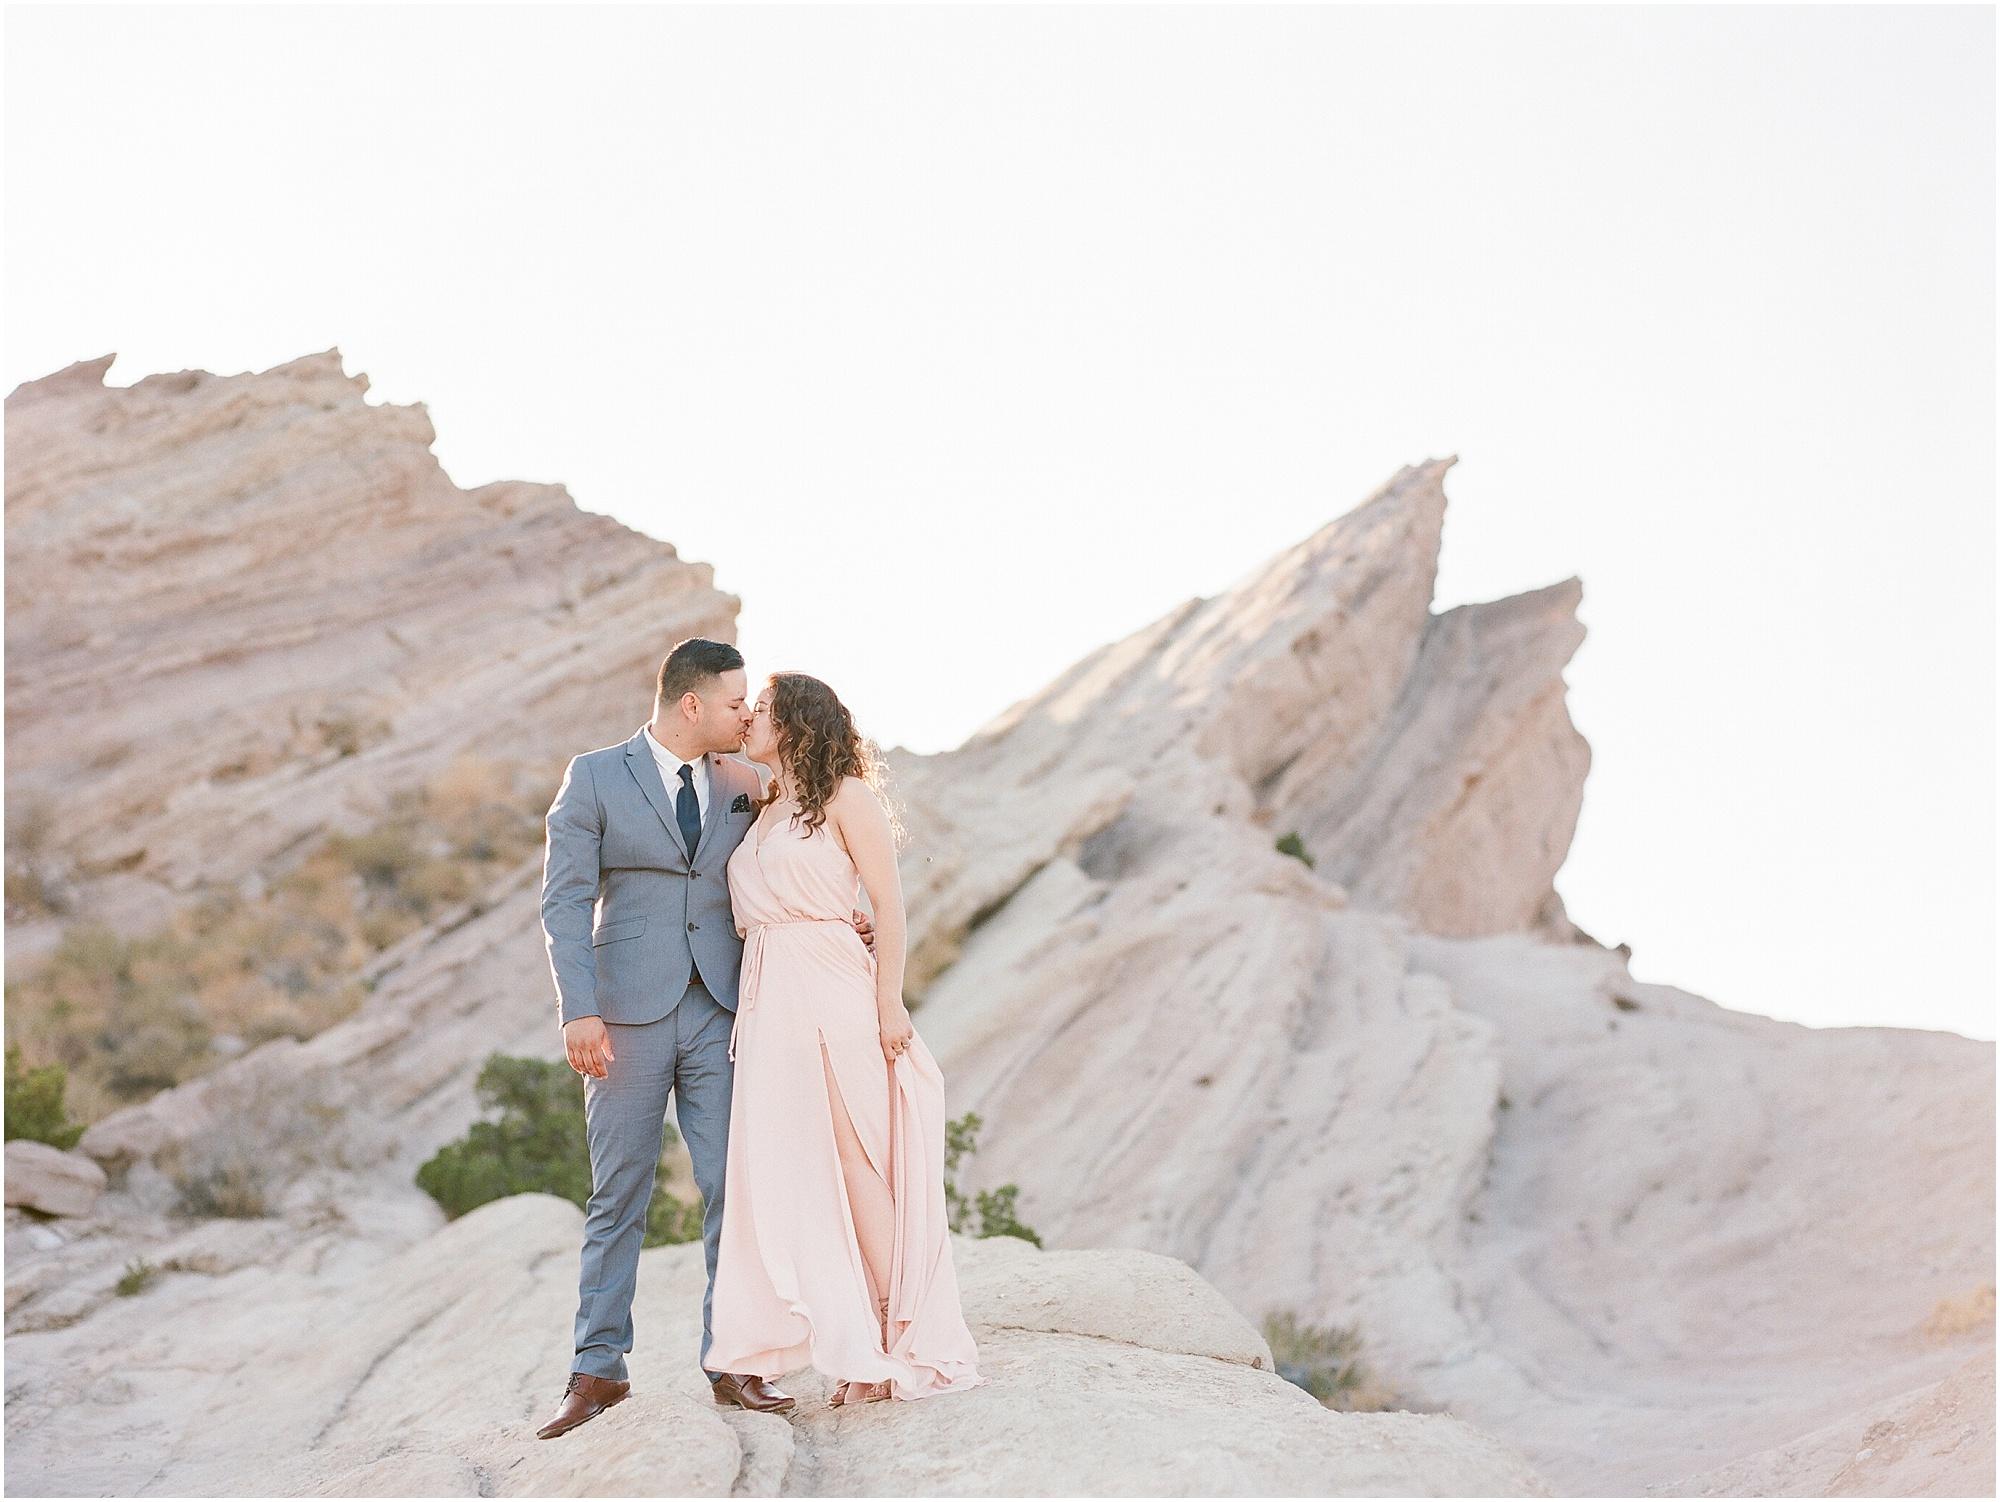 Vasquez-rocks-engagement-session-49.jpg